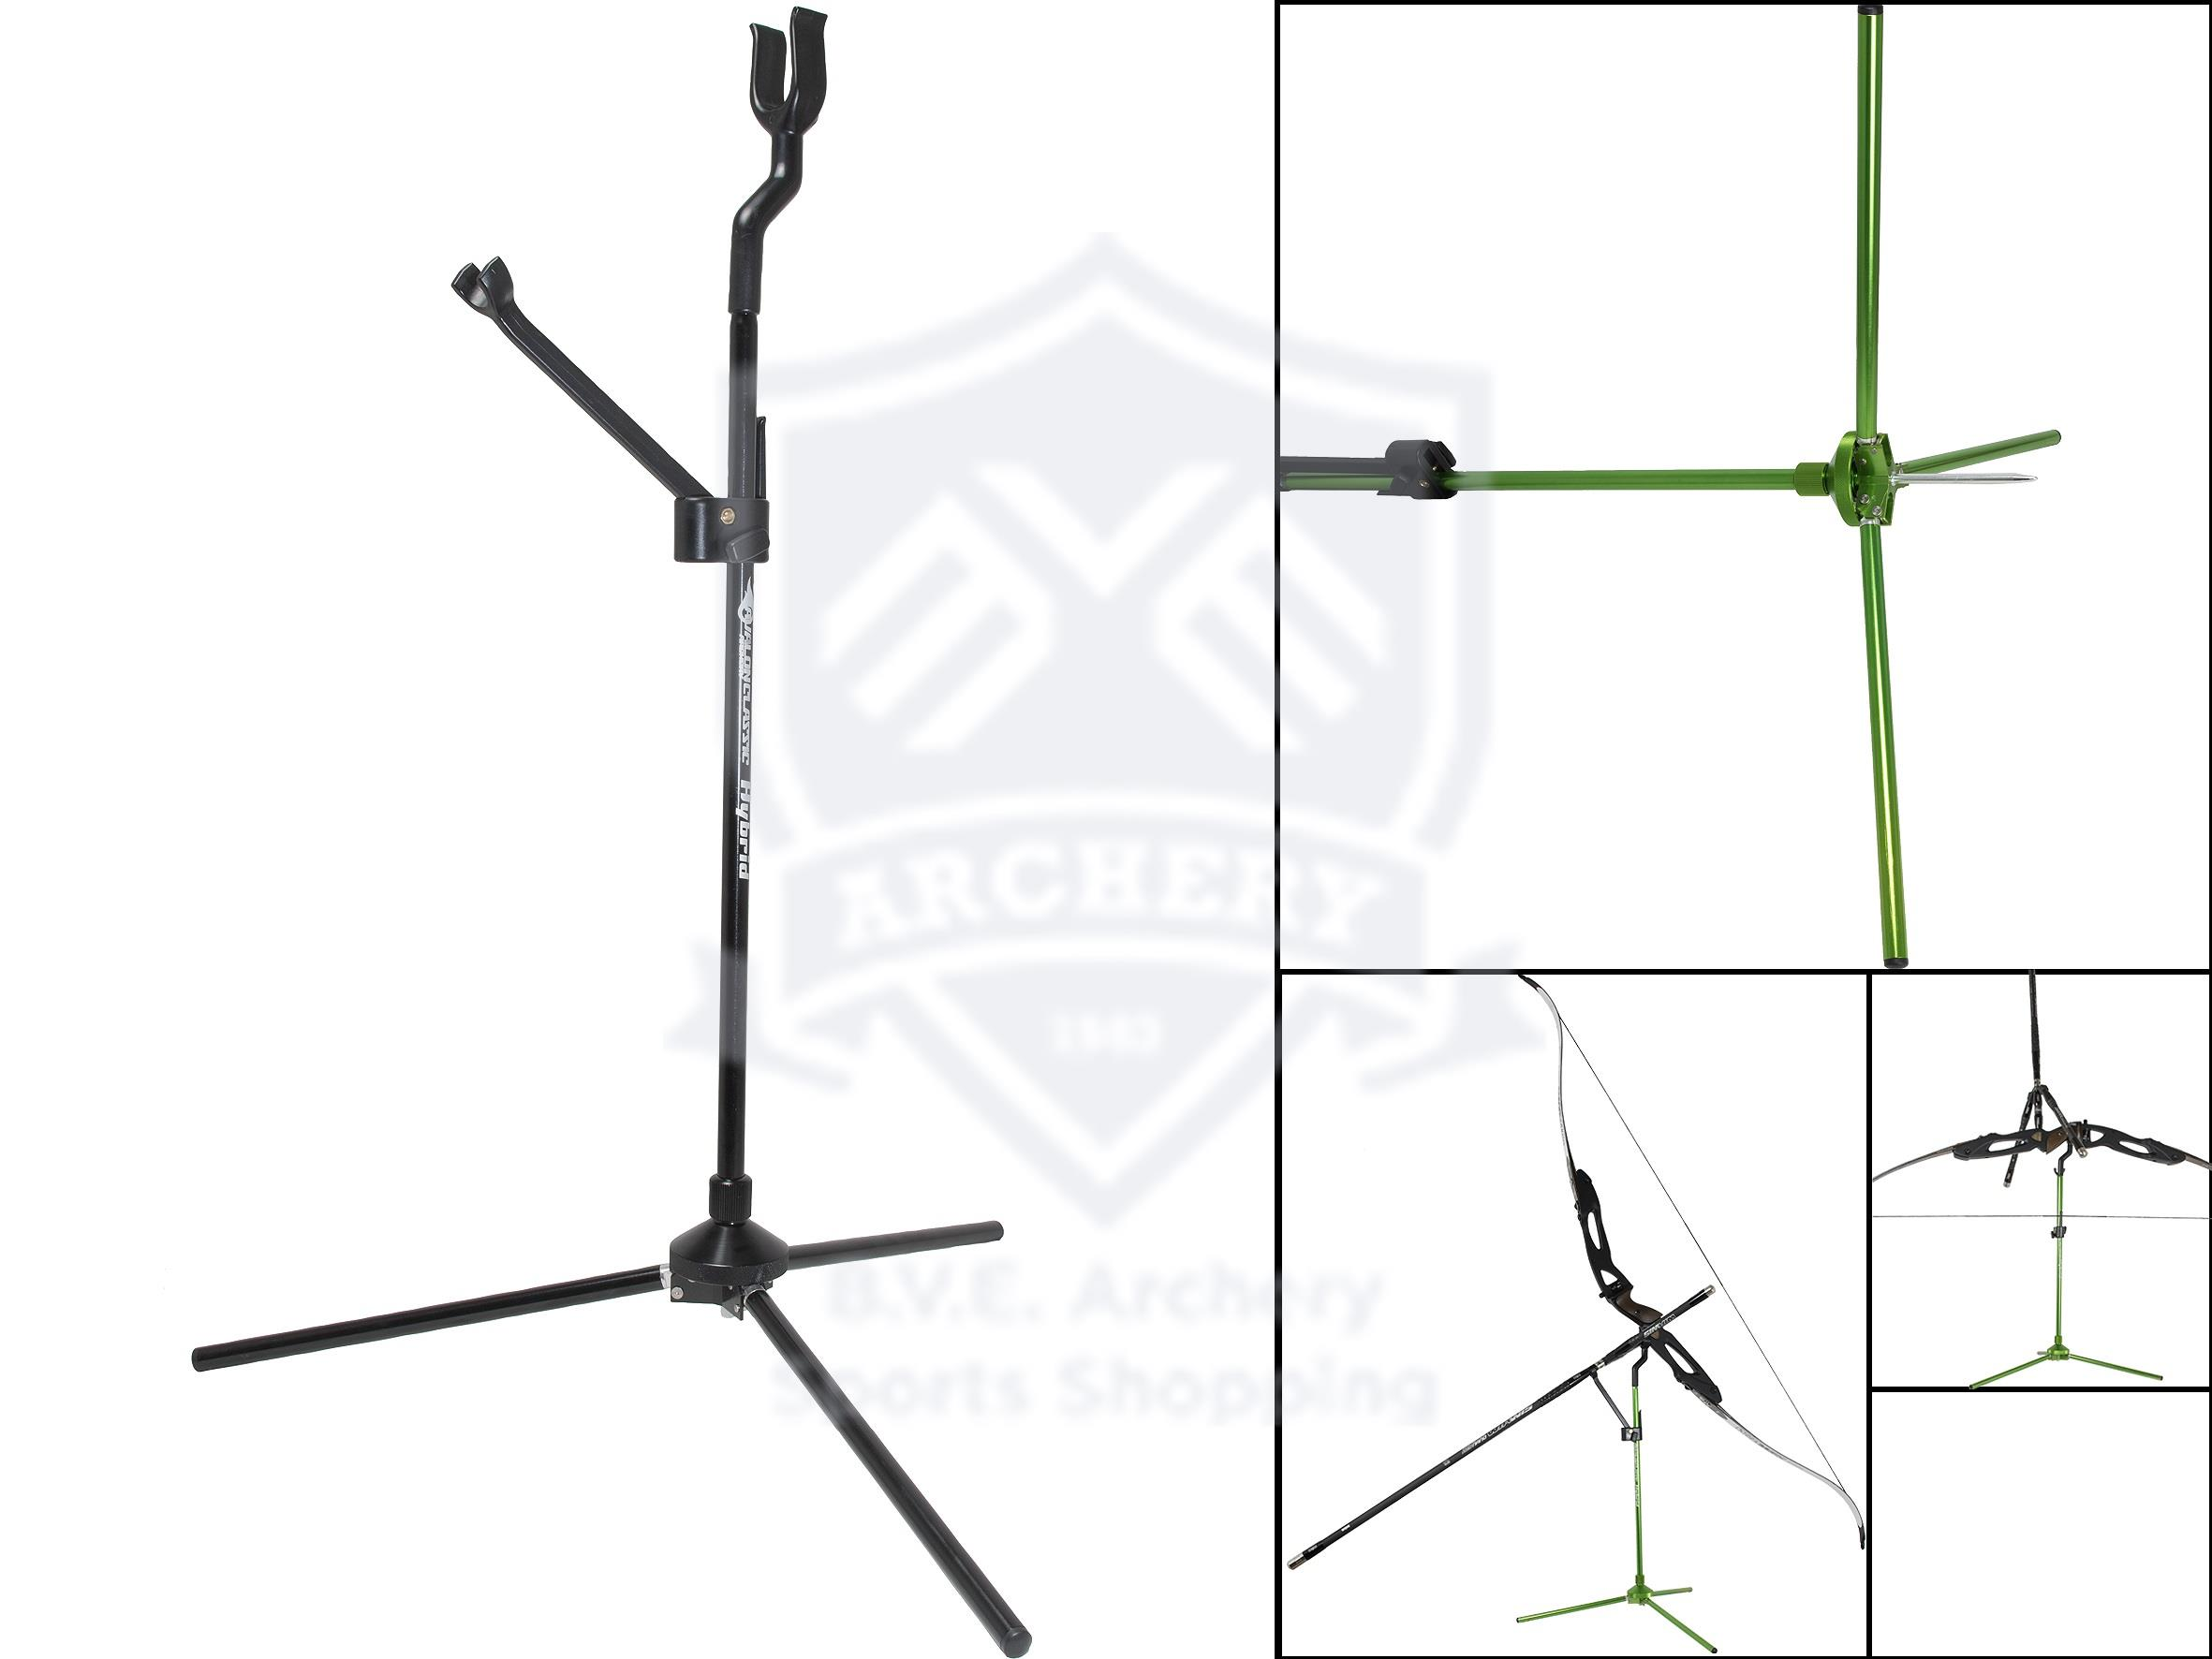 AVALON BOW STANDS CLASSIC HYBRID QUICK FOLD